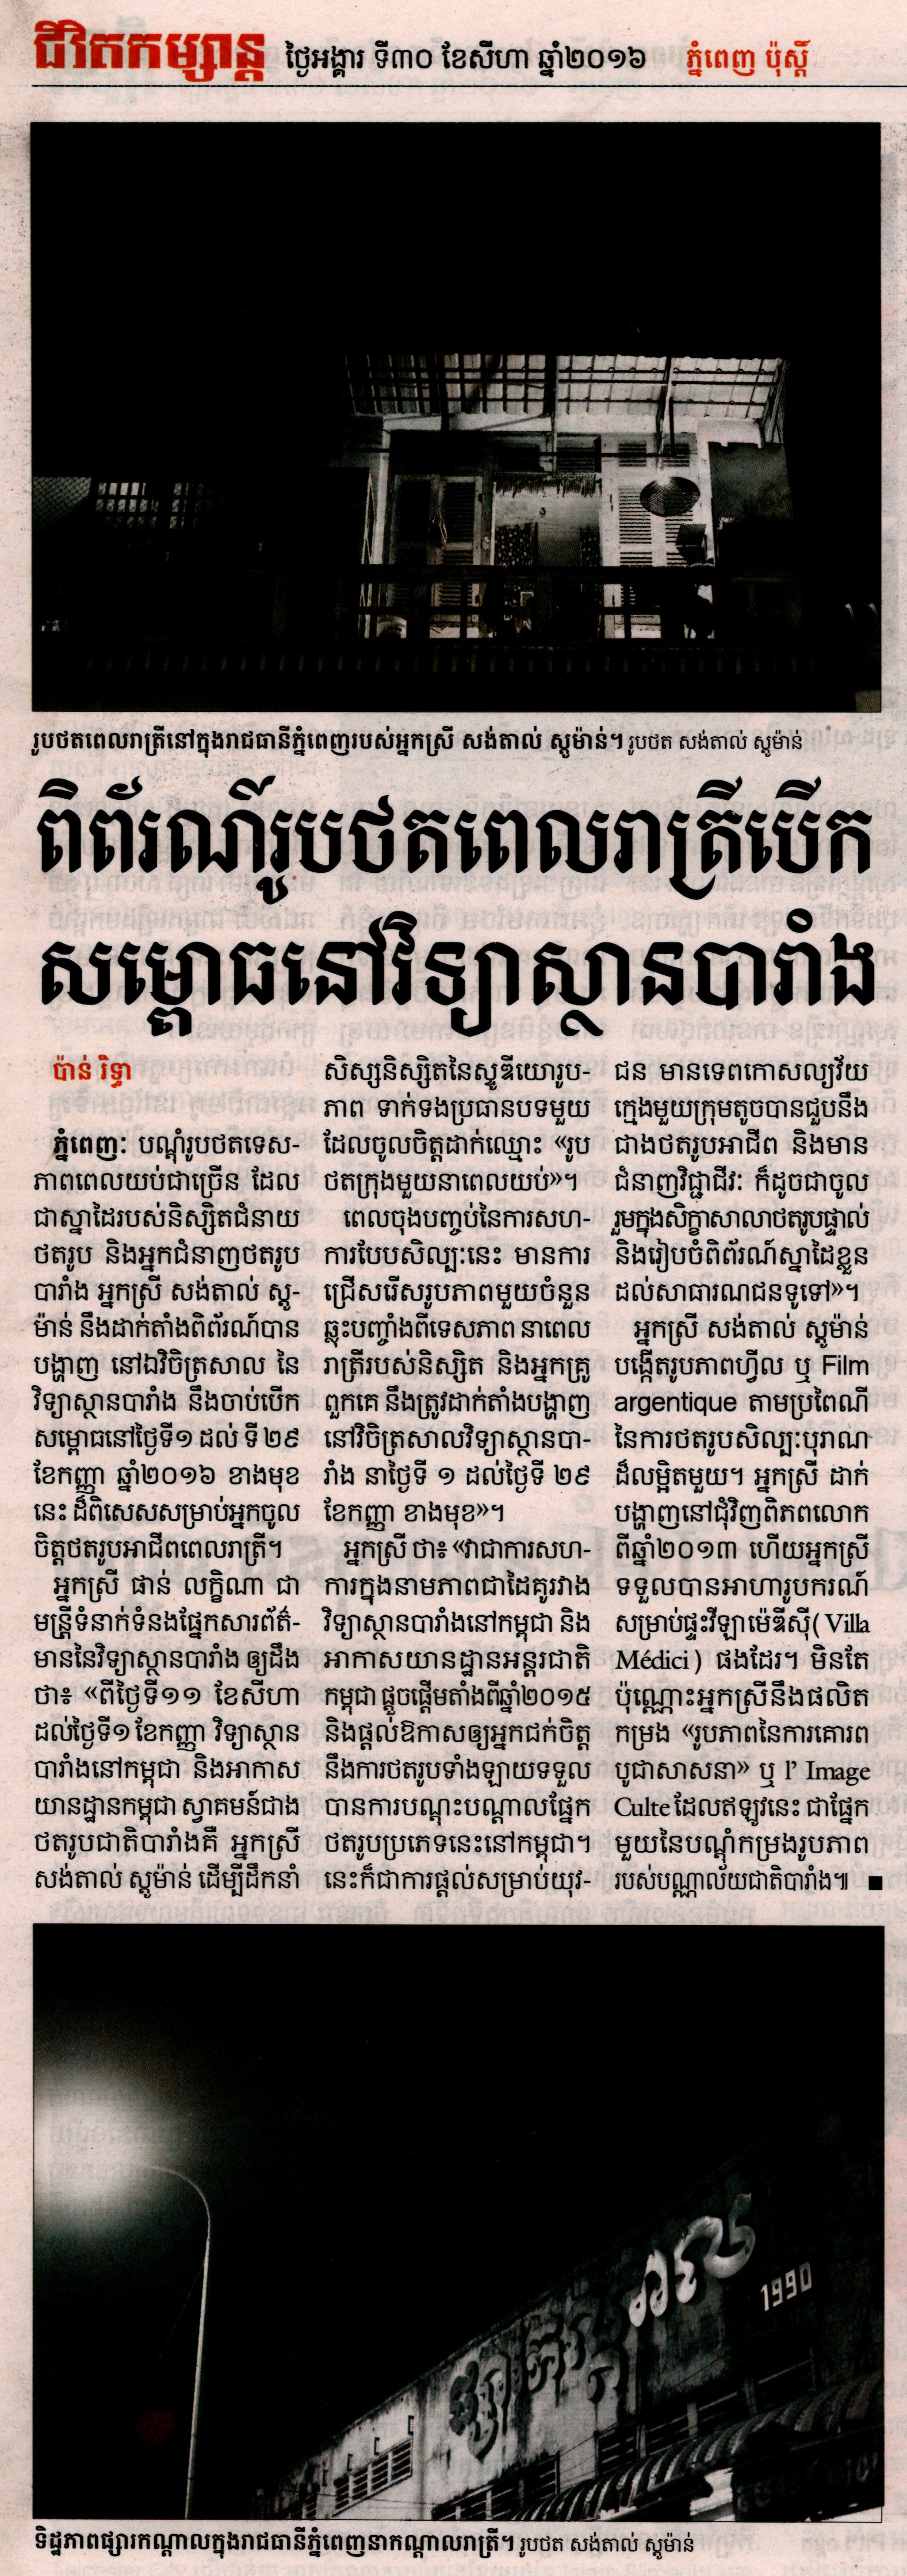 Article / Phnom Penh